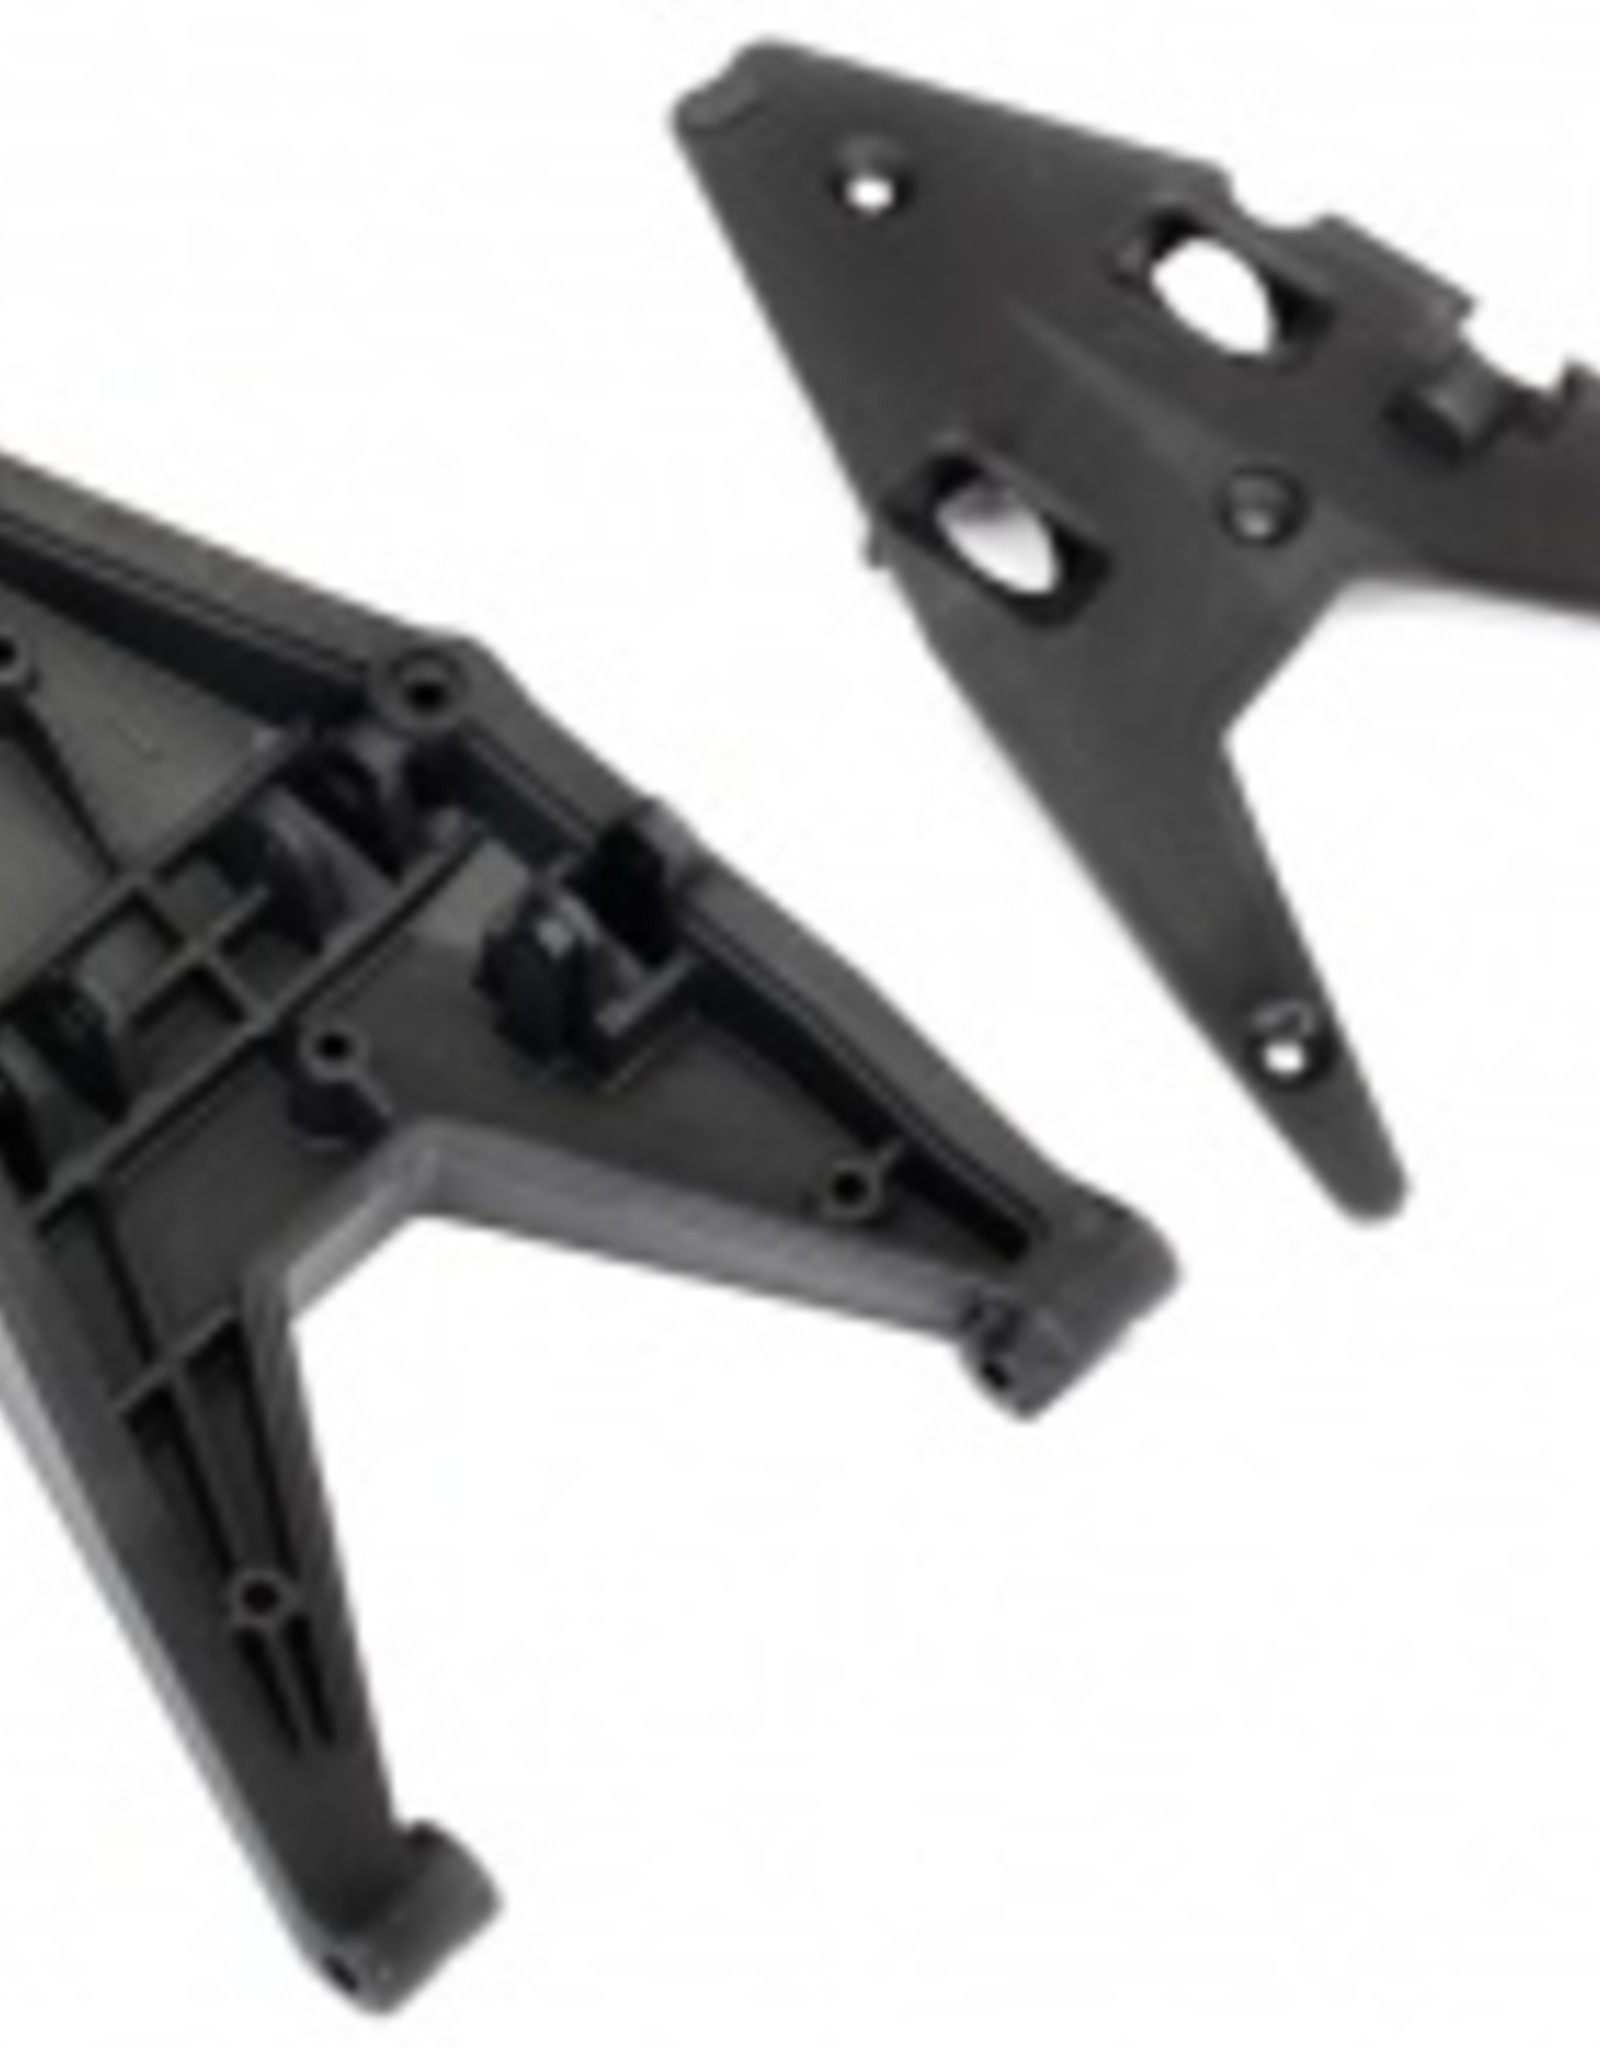 Traxxas Traxxas Unlimited Desert Racer Suspension arm, lower left/ arm insert (assembled with hollow ball)